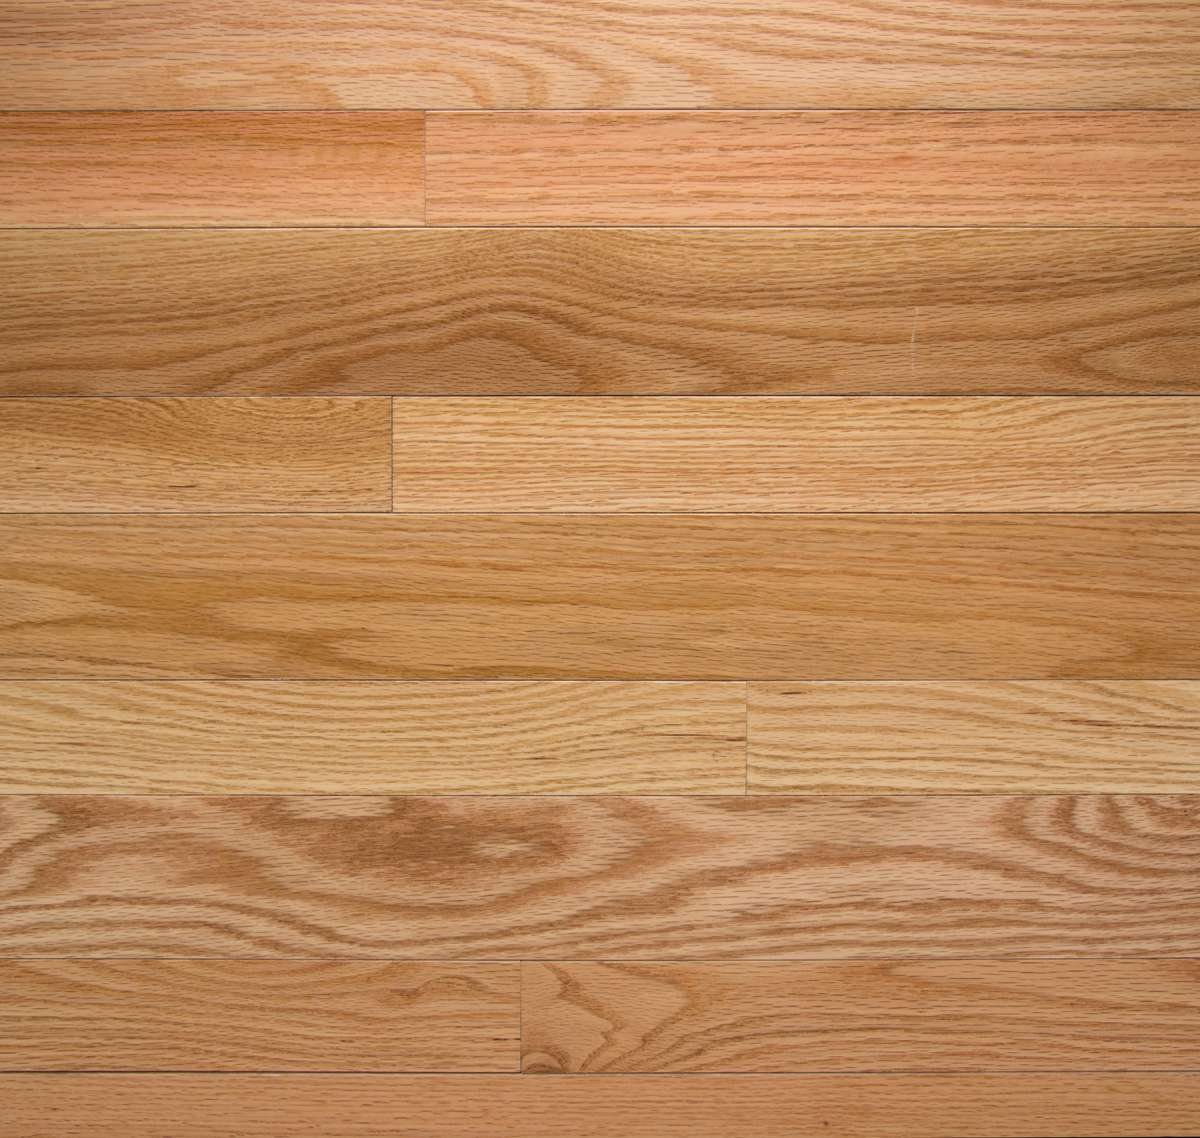 Somerset High Gloss Collection Solid Hardwood Flooring